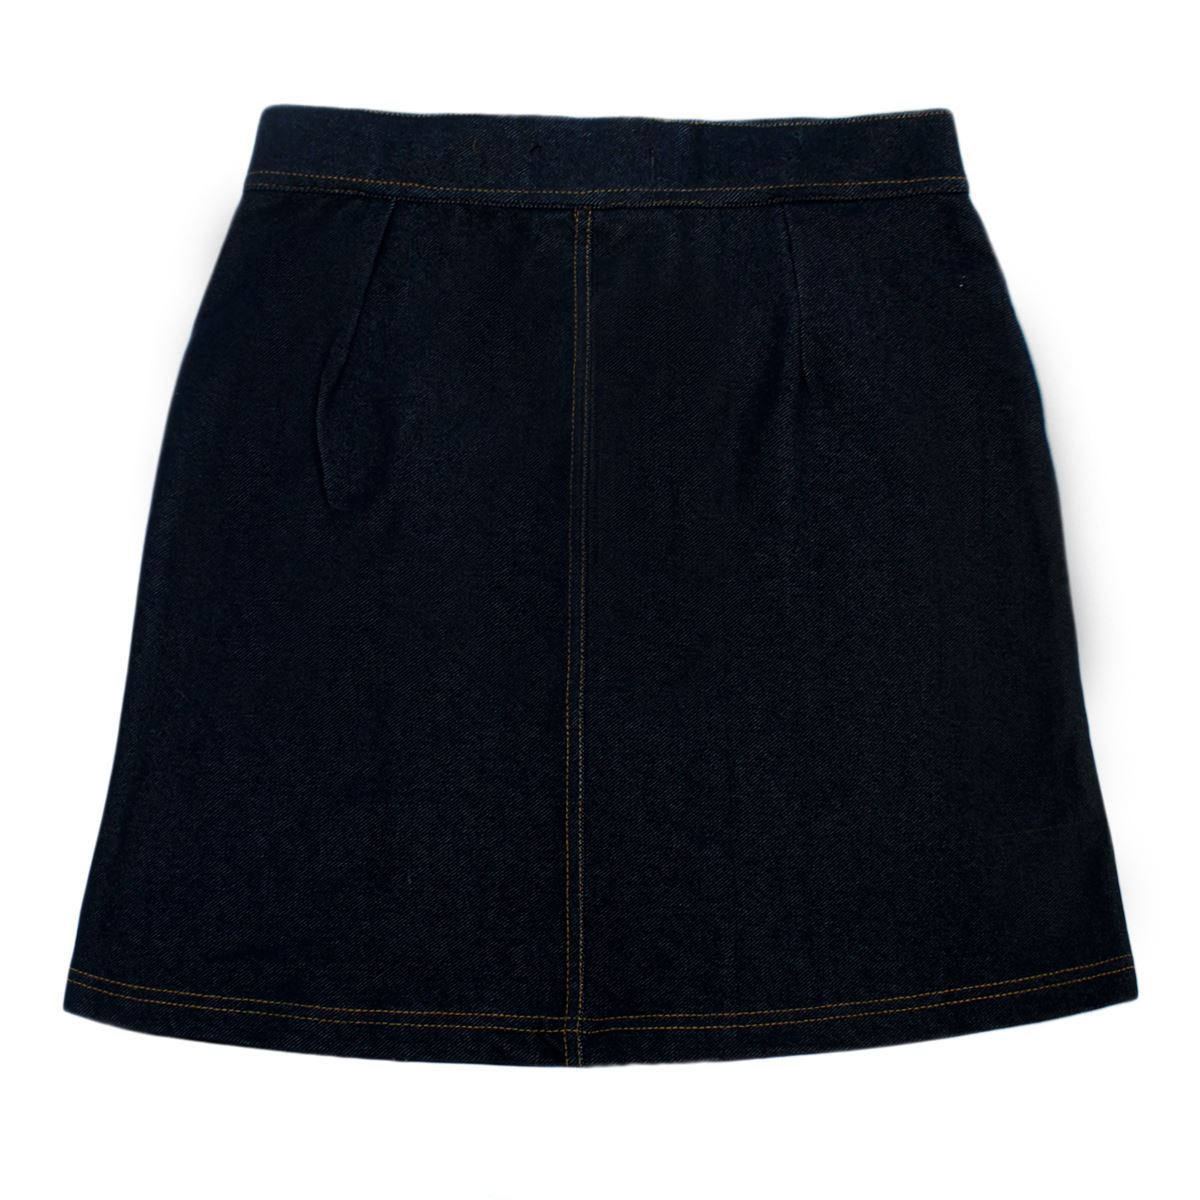 Clearance-New-Women-Ladies-Rich-Jean-Front-Buttoned-A-Line-Mini-Skirt